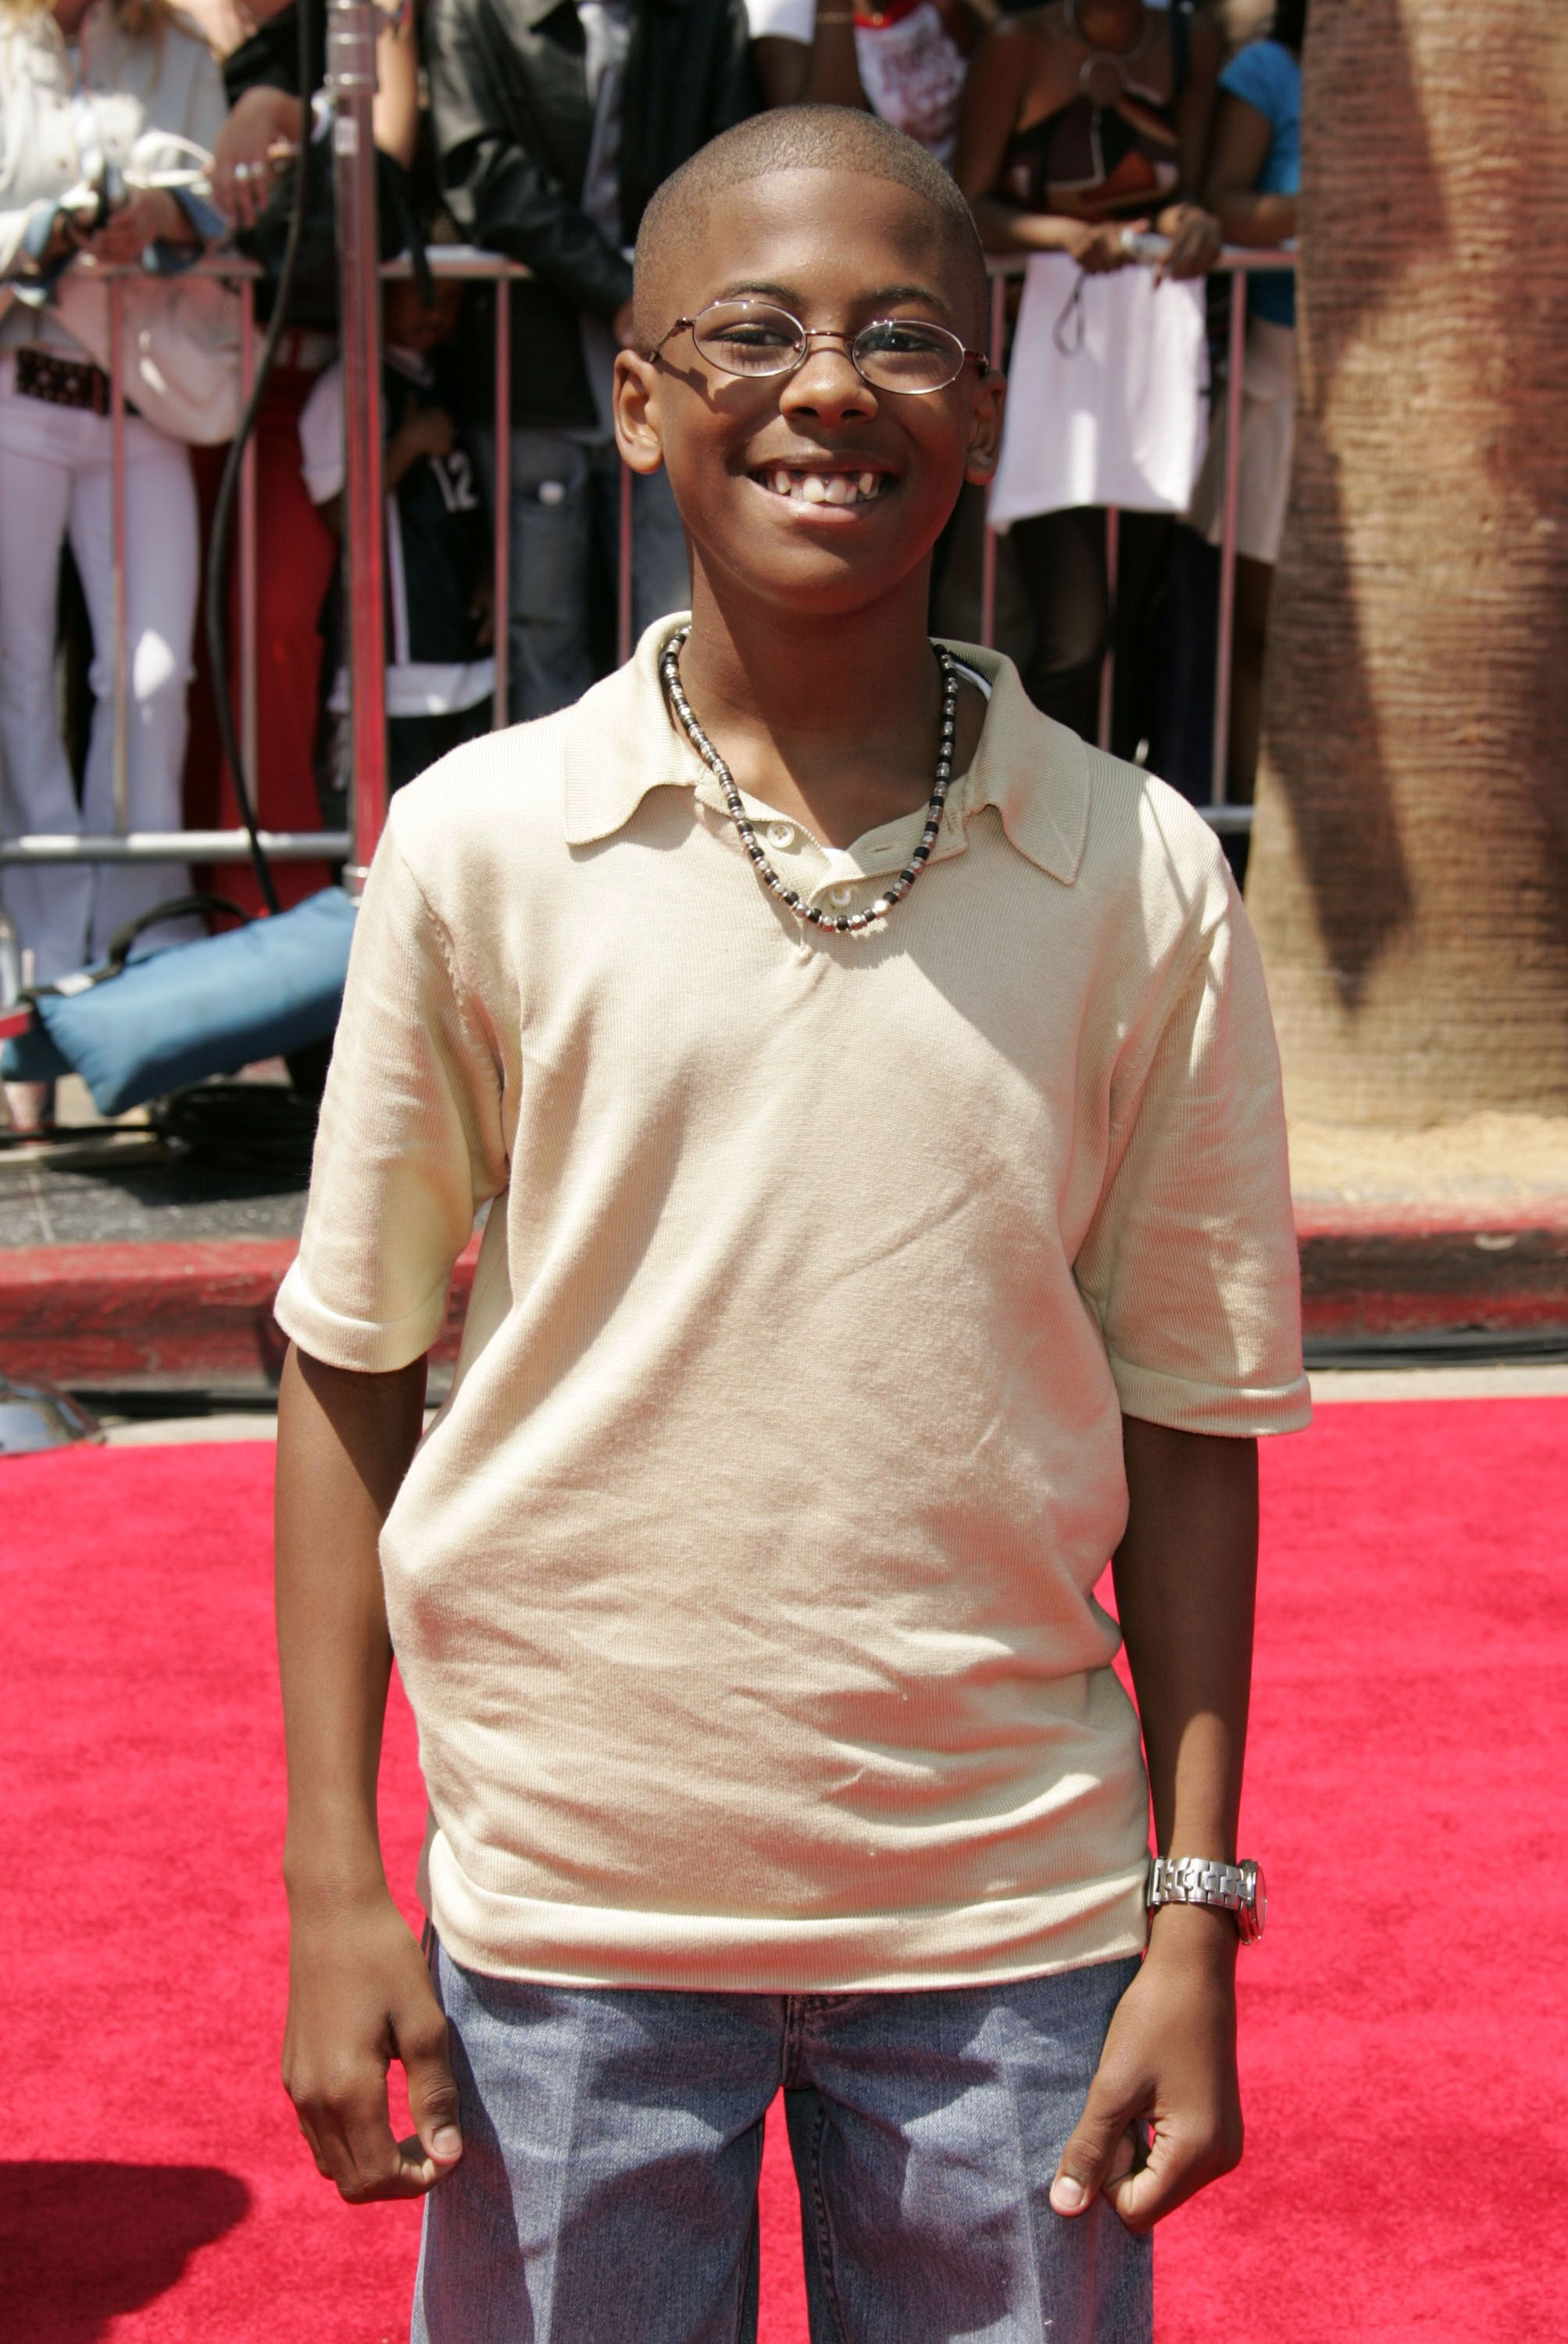 Jeremy Suarez at the Annual BET Awards in Hollywood, California. | Photo: Getty Images